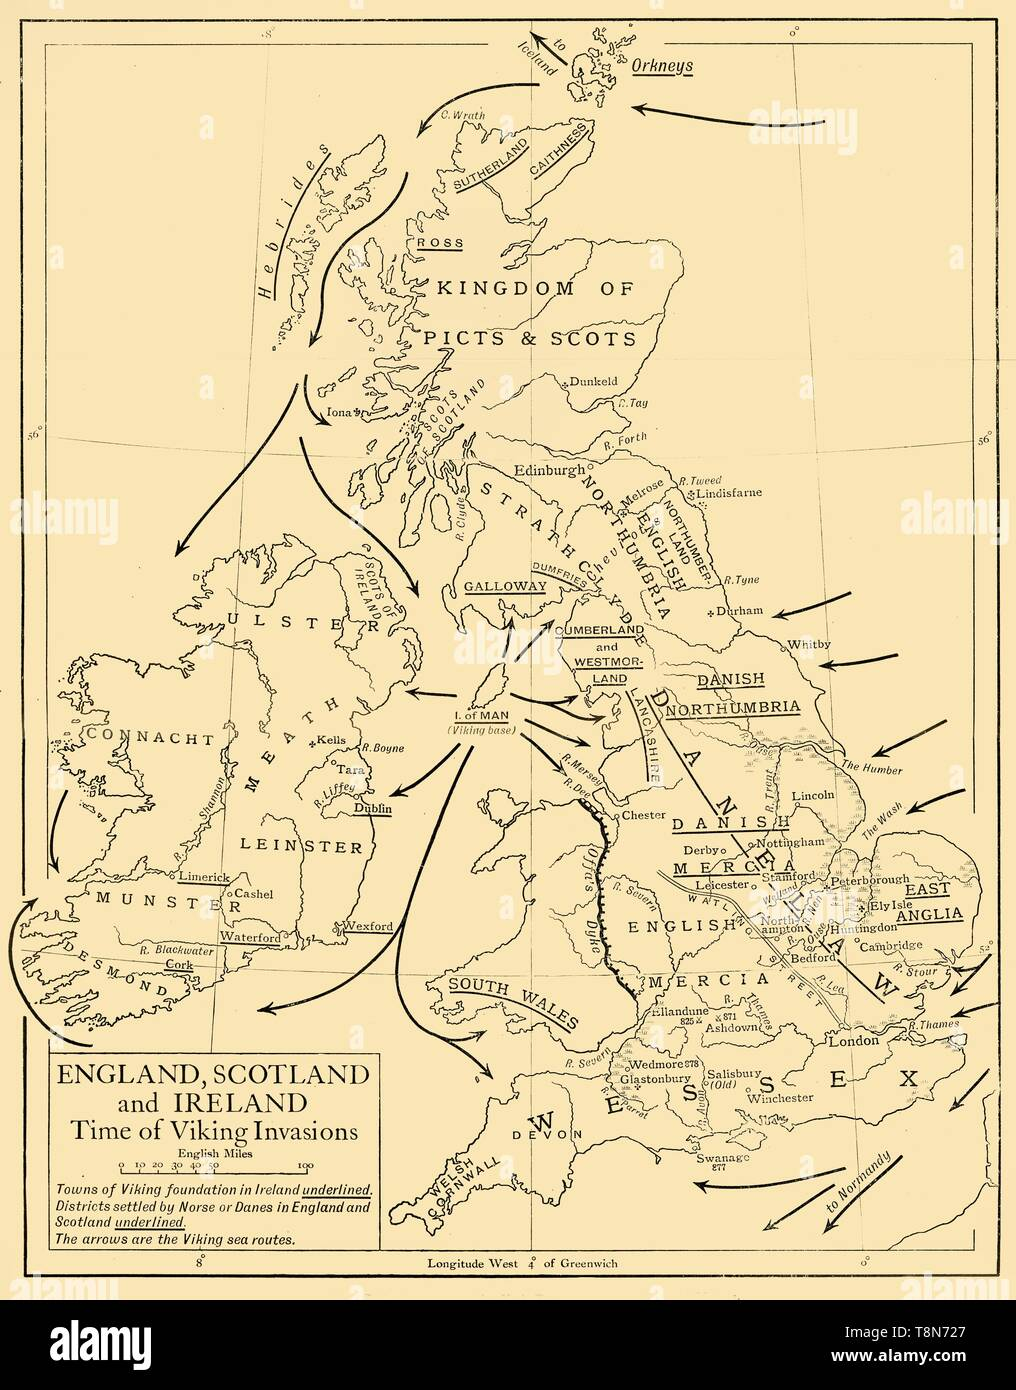 "'England, Scotland and Ireland - Time of Viking Invasions', 1926. Map of Britain during the 9th-11th century. 'Towns of Viking foundation in Ireland underlined. Districts settled by Norse or Danes in England and Scotland are underlined. The arrows are the Viking sea routes.' From ""History of England"", by George Macaulay Trevelyan. [Longmans, Green and Co. Ltd, London, 1926] - Stock Image"